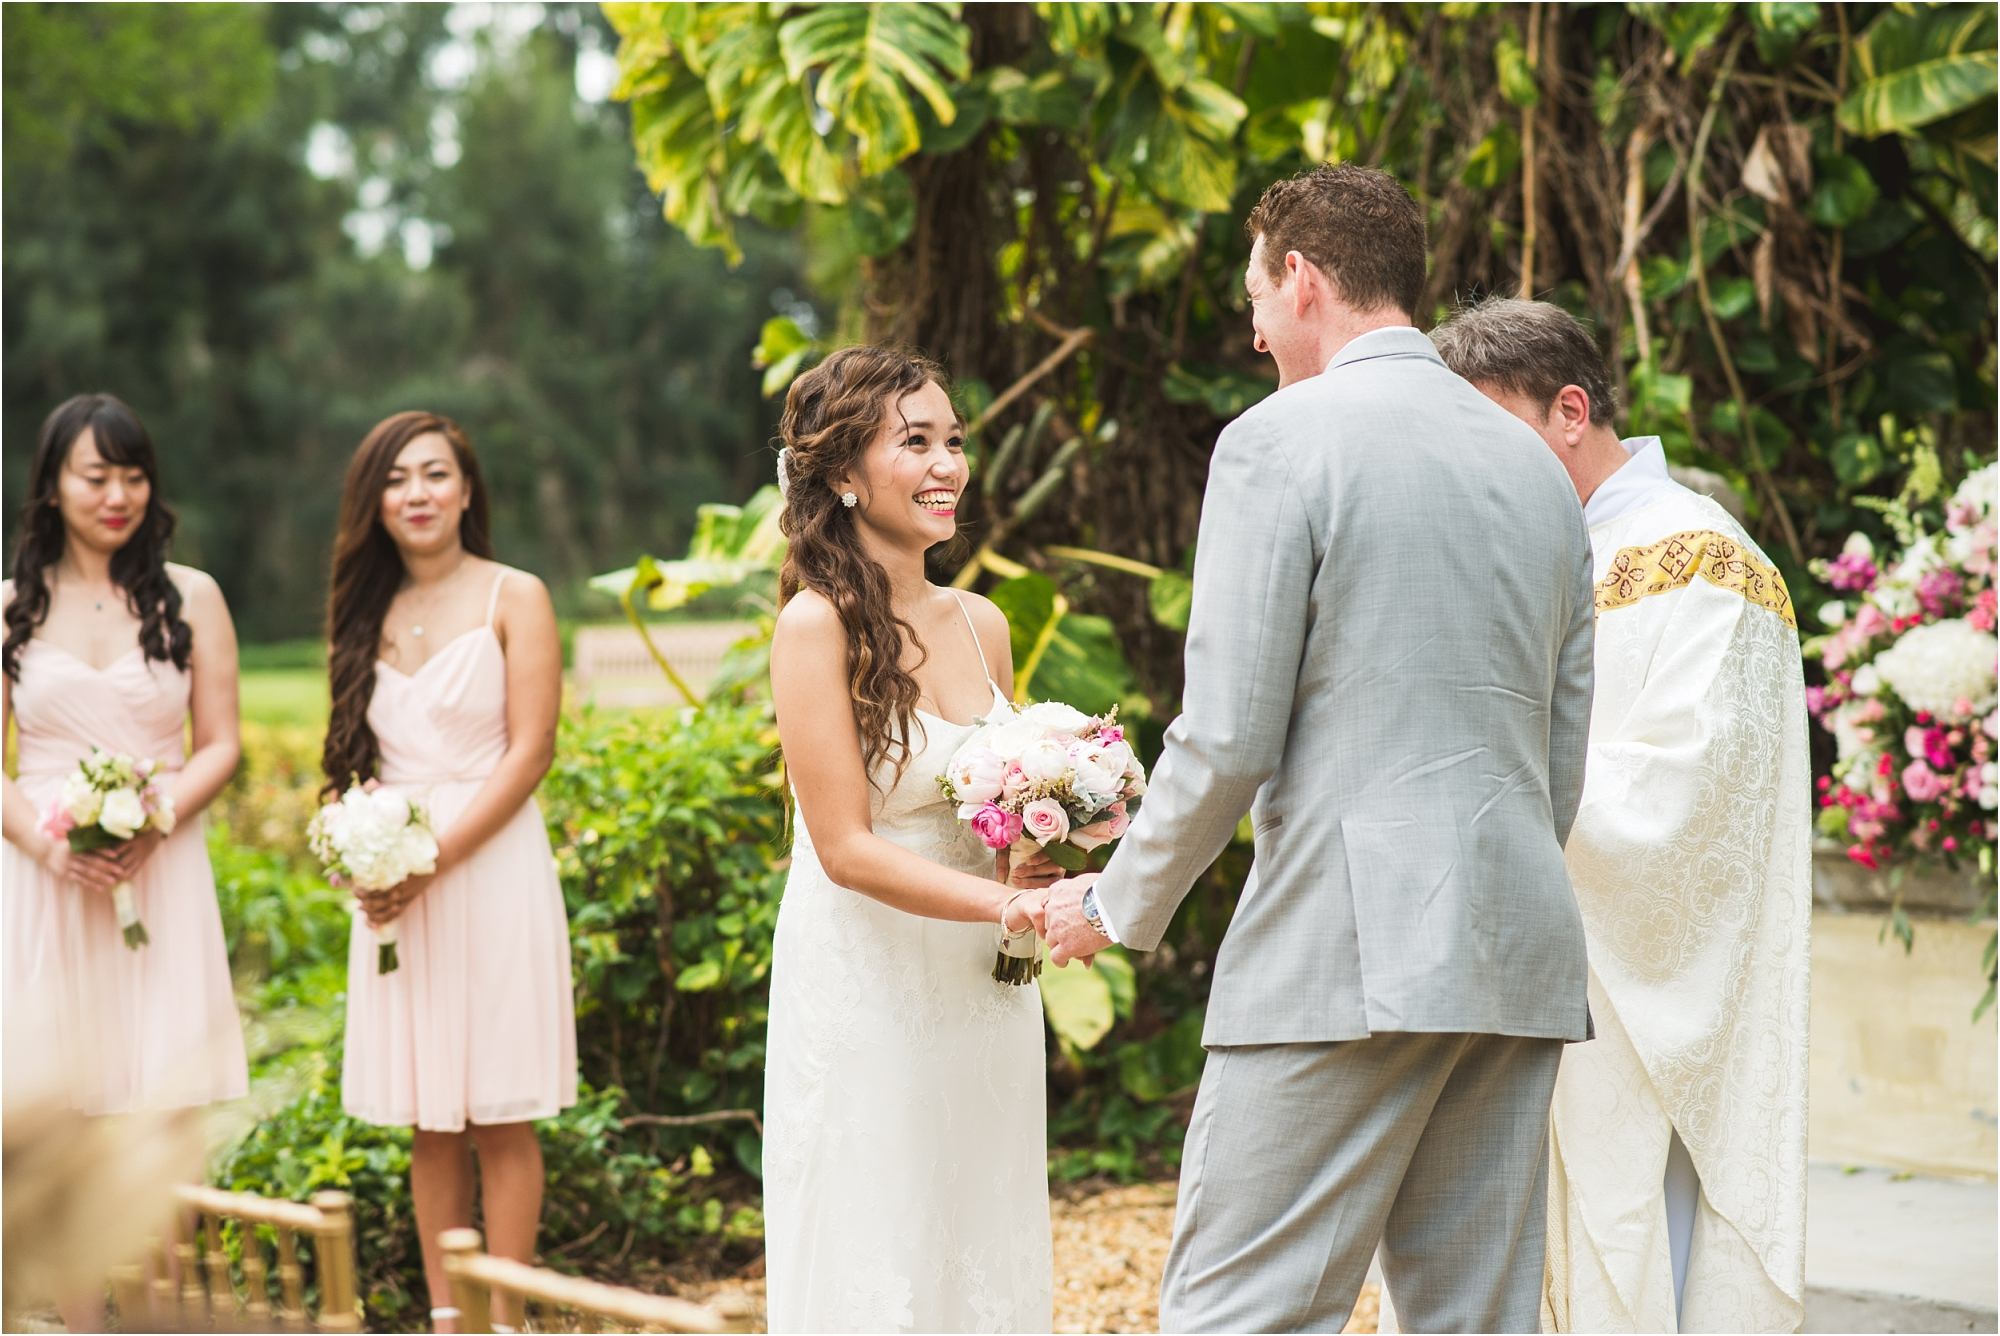 Spanish-Monastery-miami-beach-outdoor-elegant-wedding-photographer-jessenia-gonzalez_1160.jpg